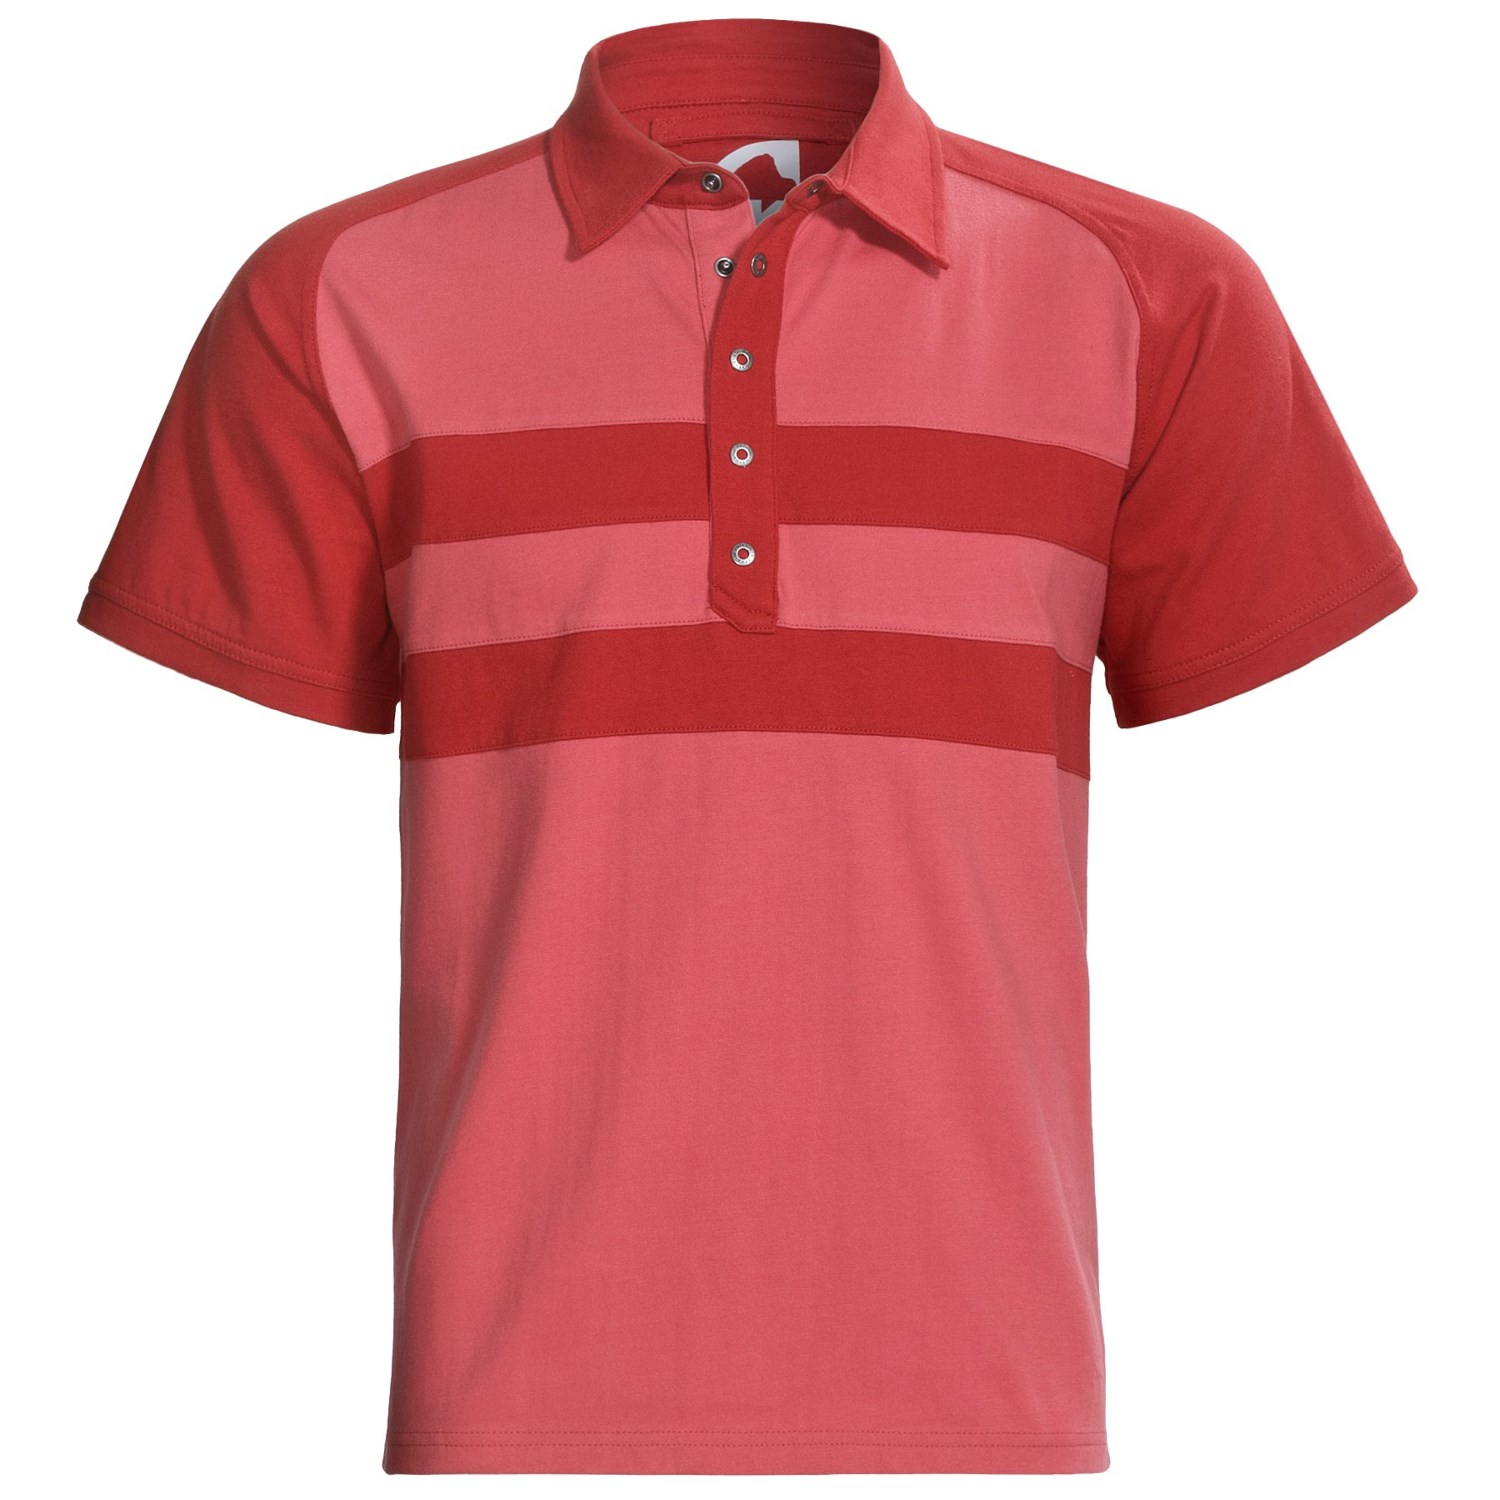 Mountain Khakis Fairway Polo Shirt For Men 5652r Save 50